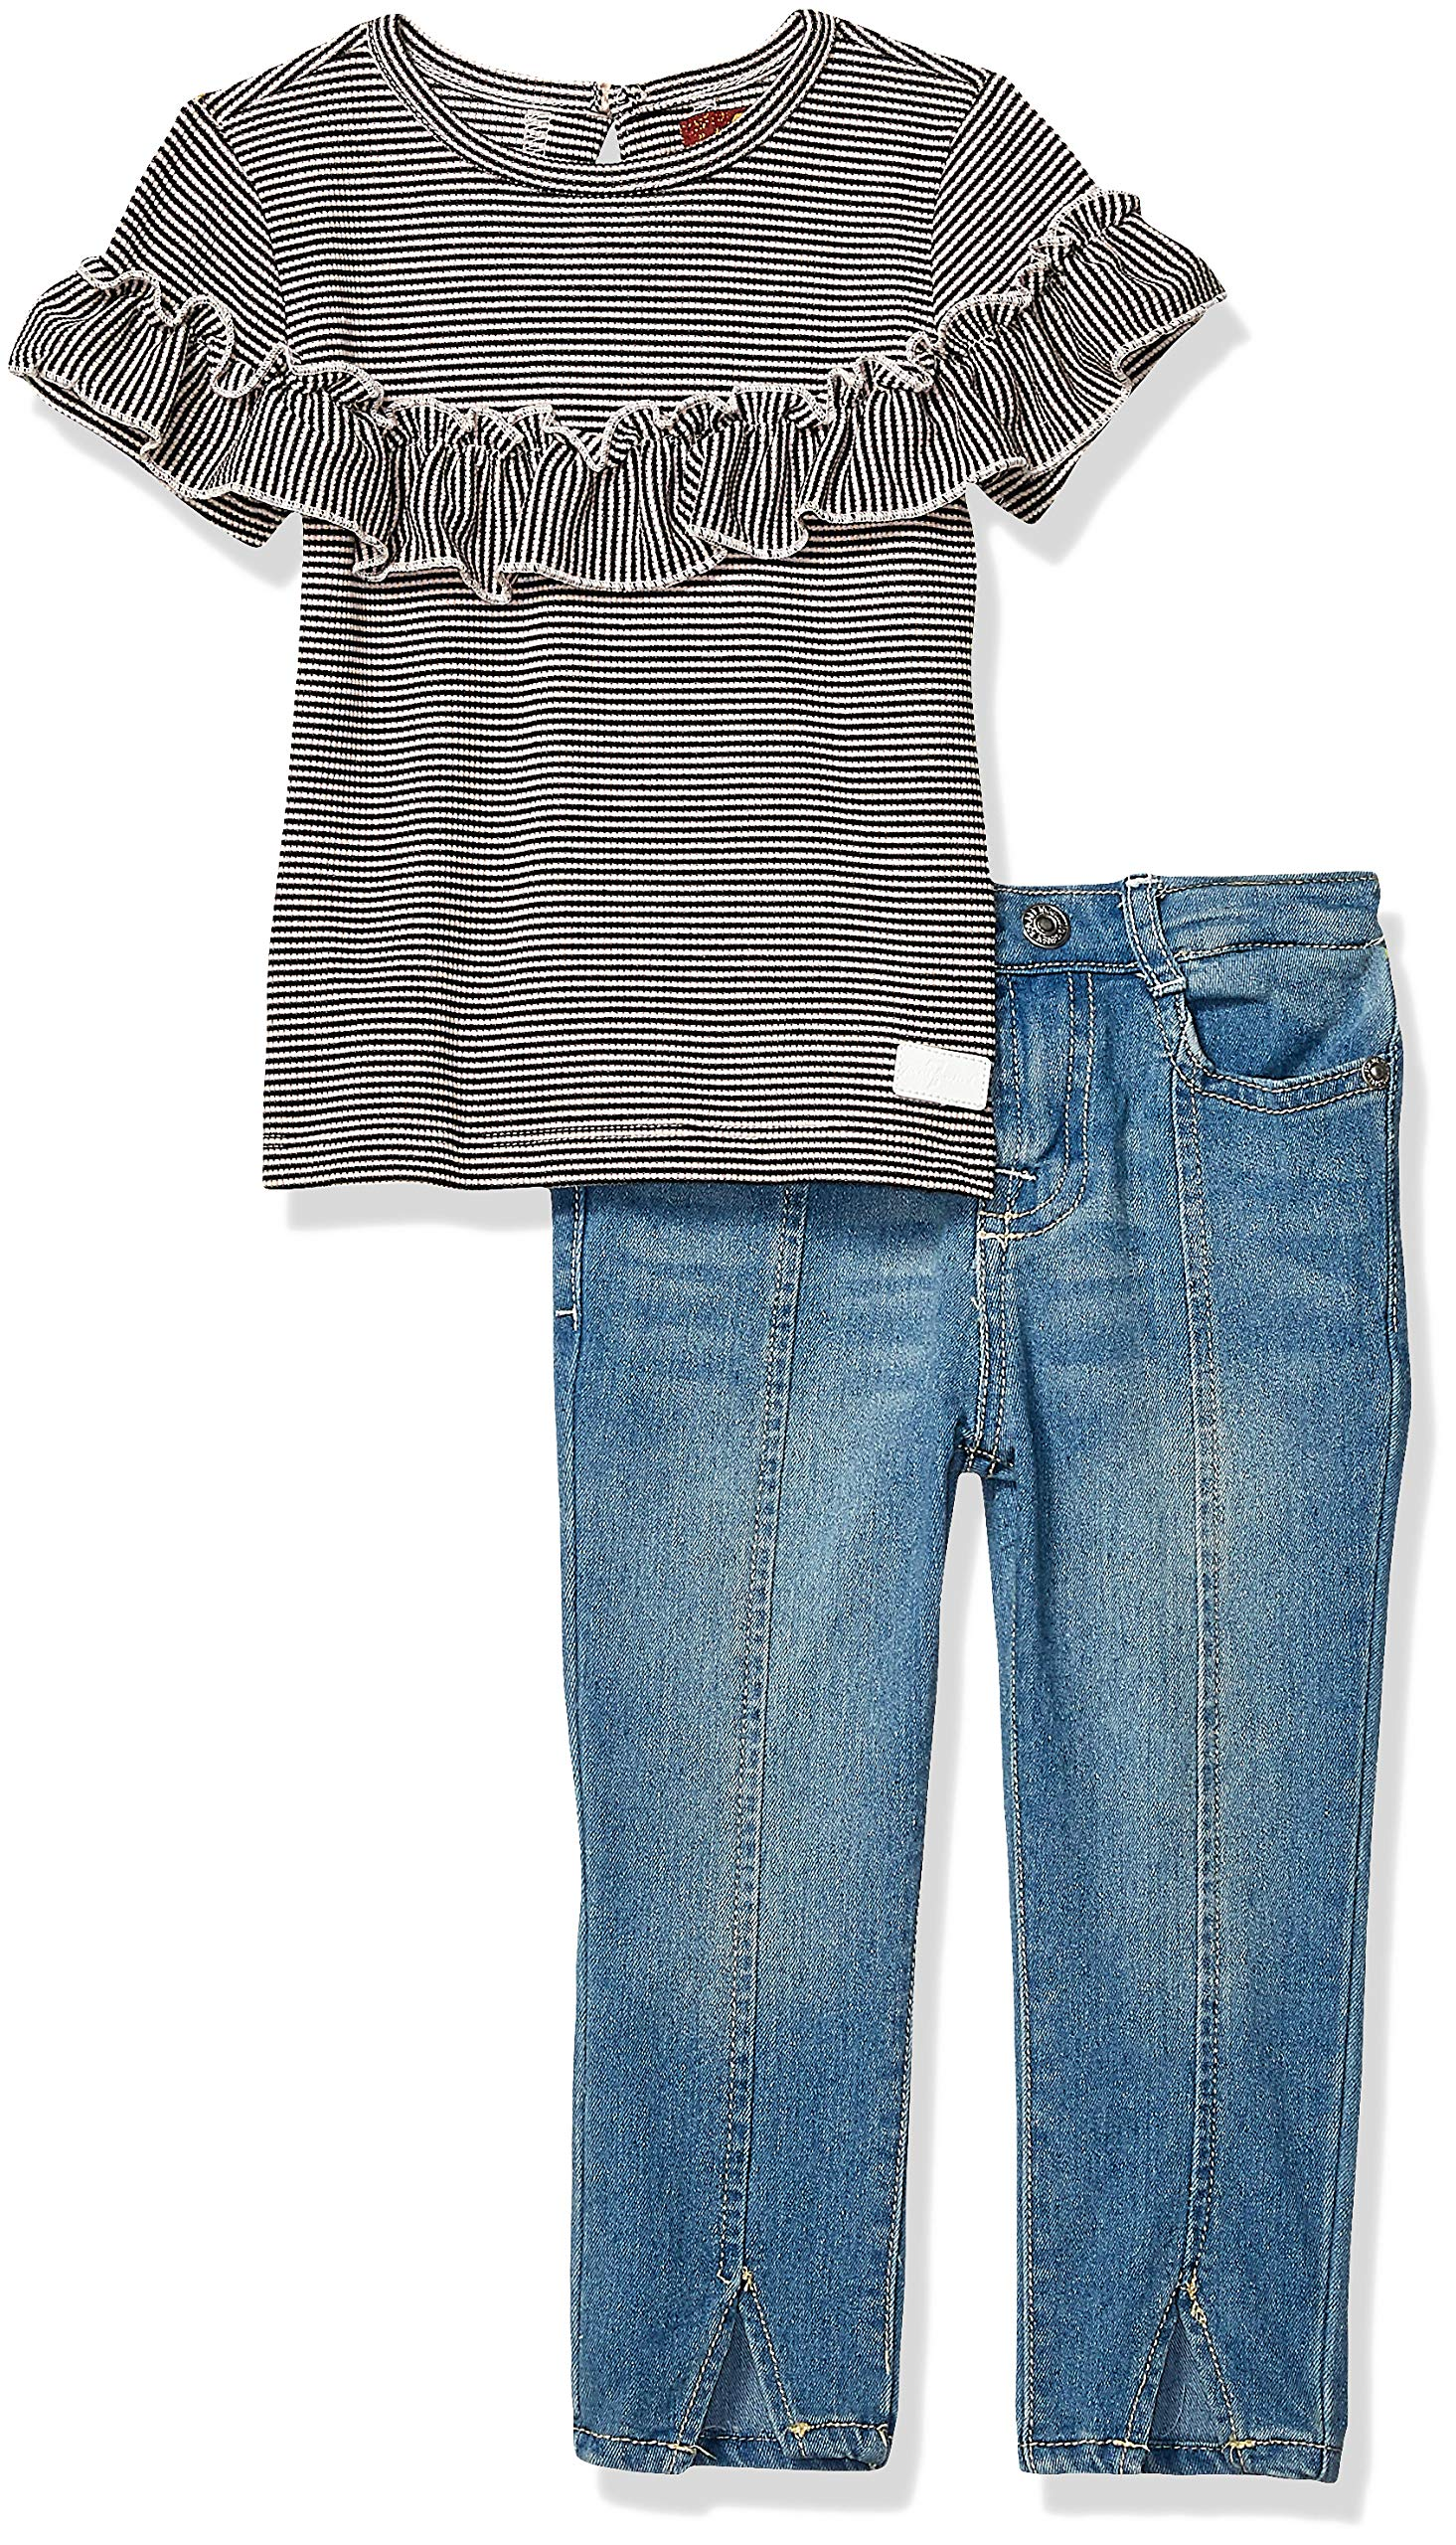 7 For All Mankind Girls' Toddler 2 Piece Fashion Top and Denim Jeans Set